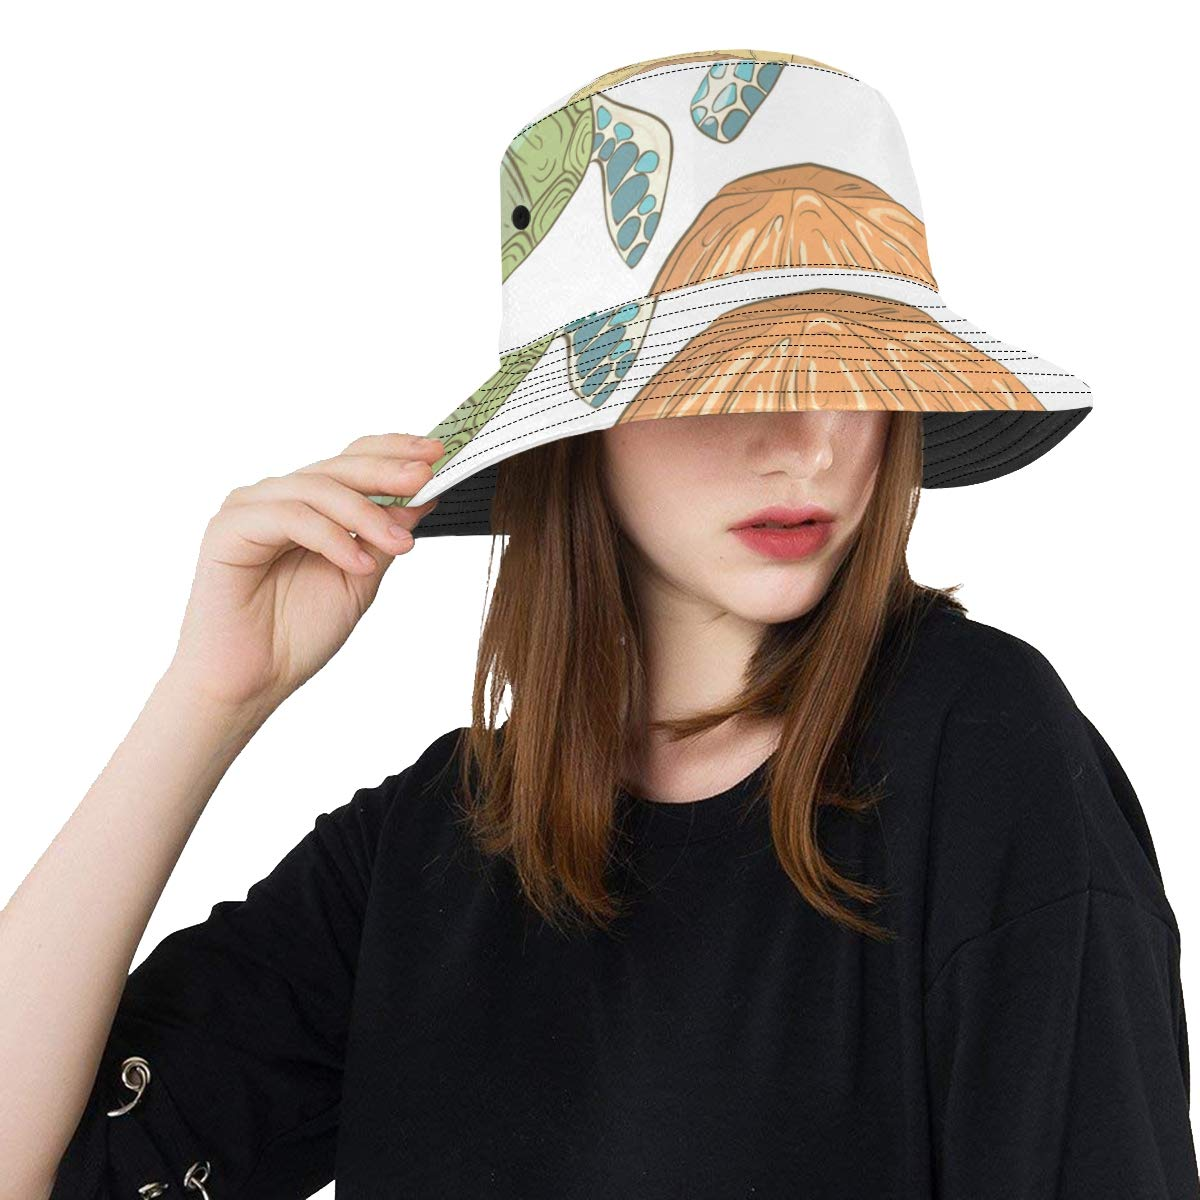 Underwater Ocean Sea Life Animal Green Turtle New Summer Unisex Cotton Fashion Fishing Sun Bucket Hats for Kid Teens Women and Men with Customize Top Packable Fisherman Cap for Outdoor Travel